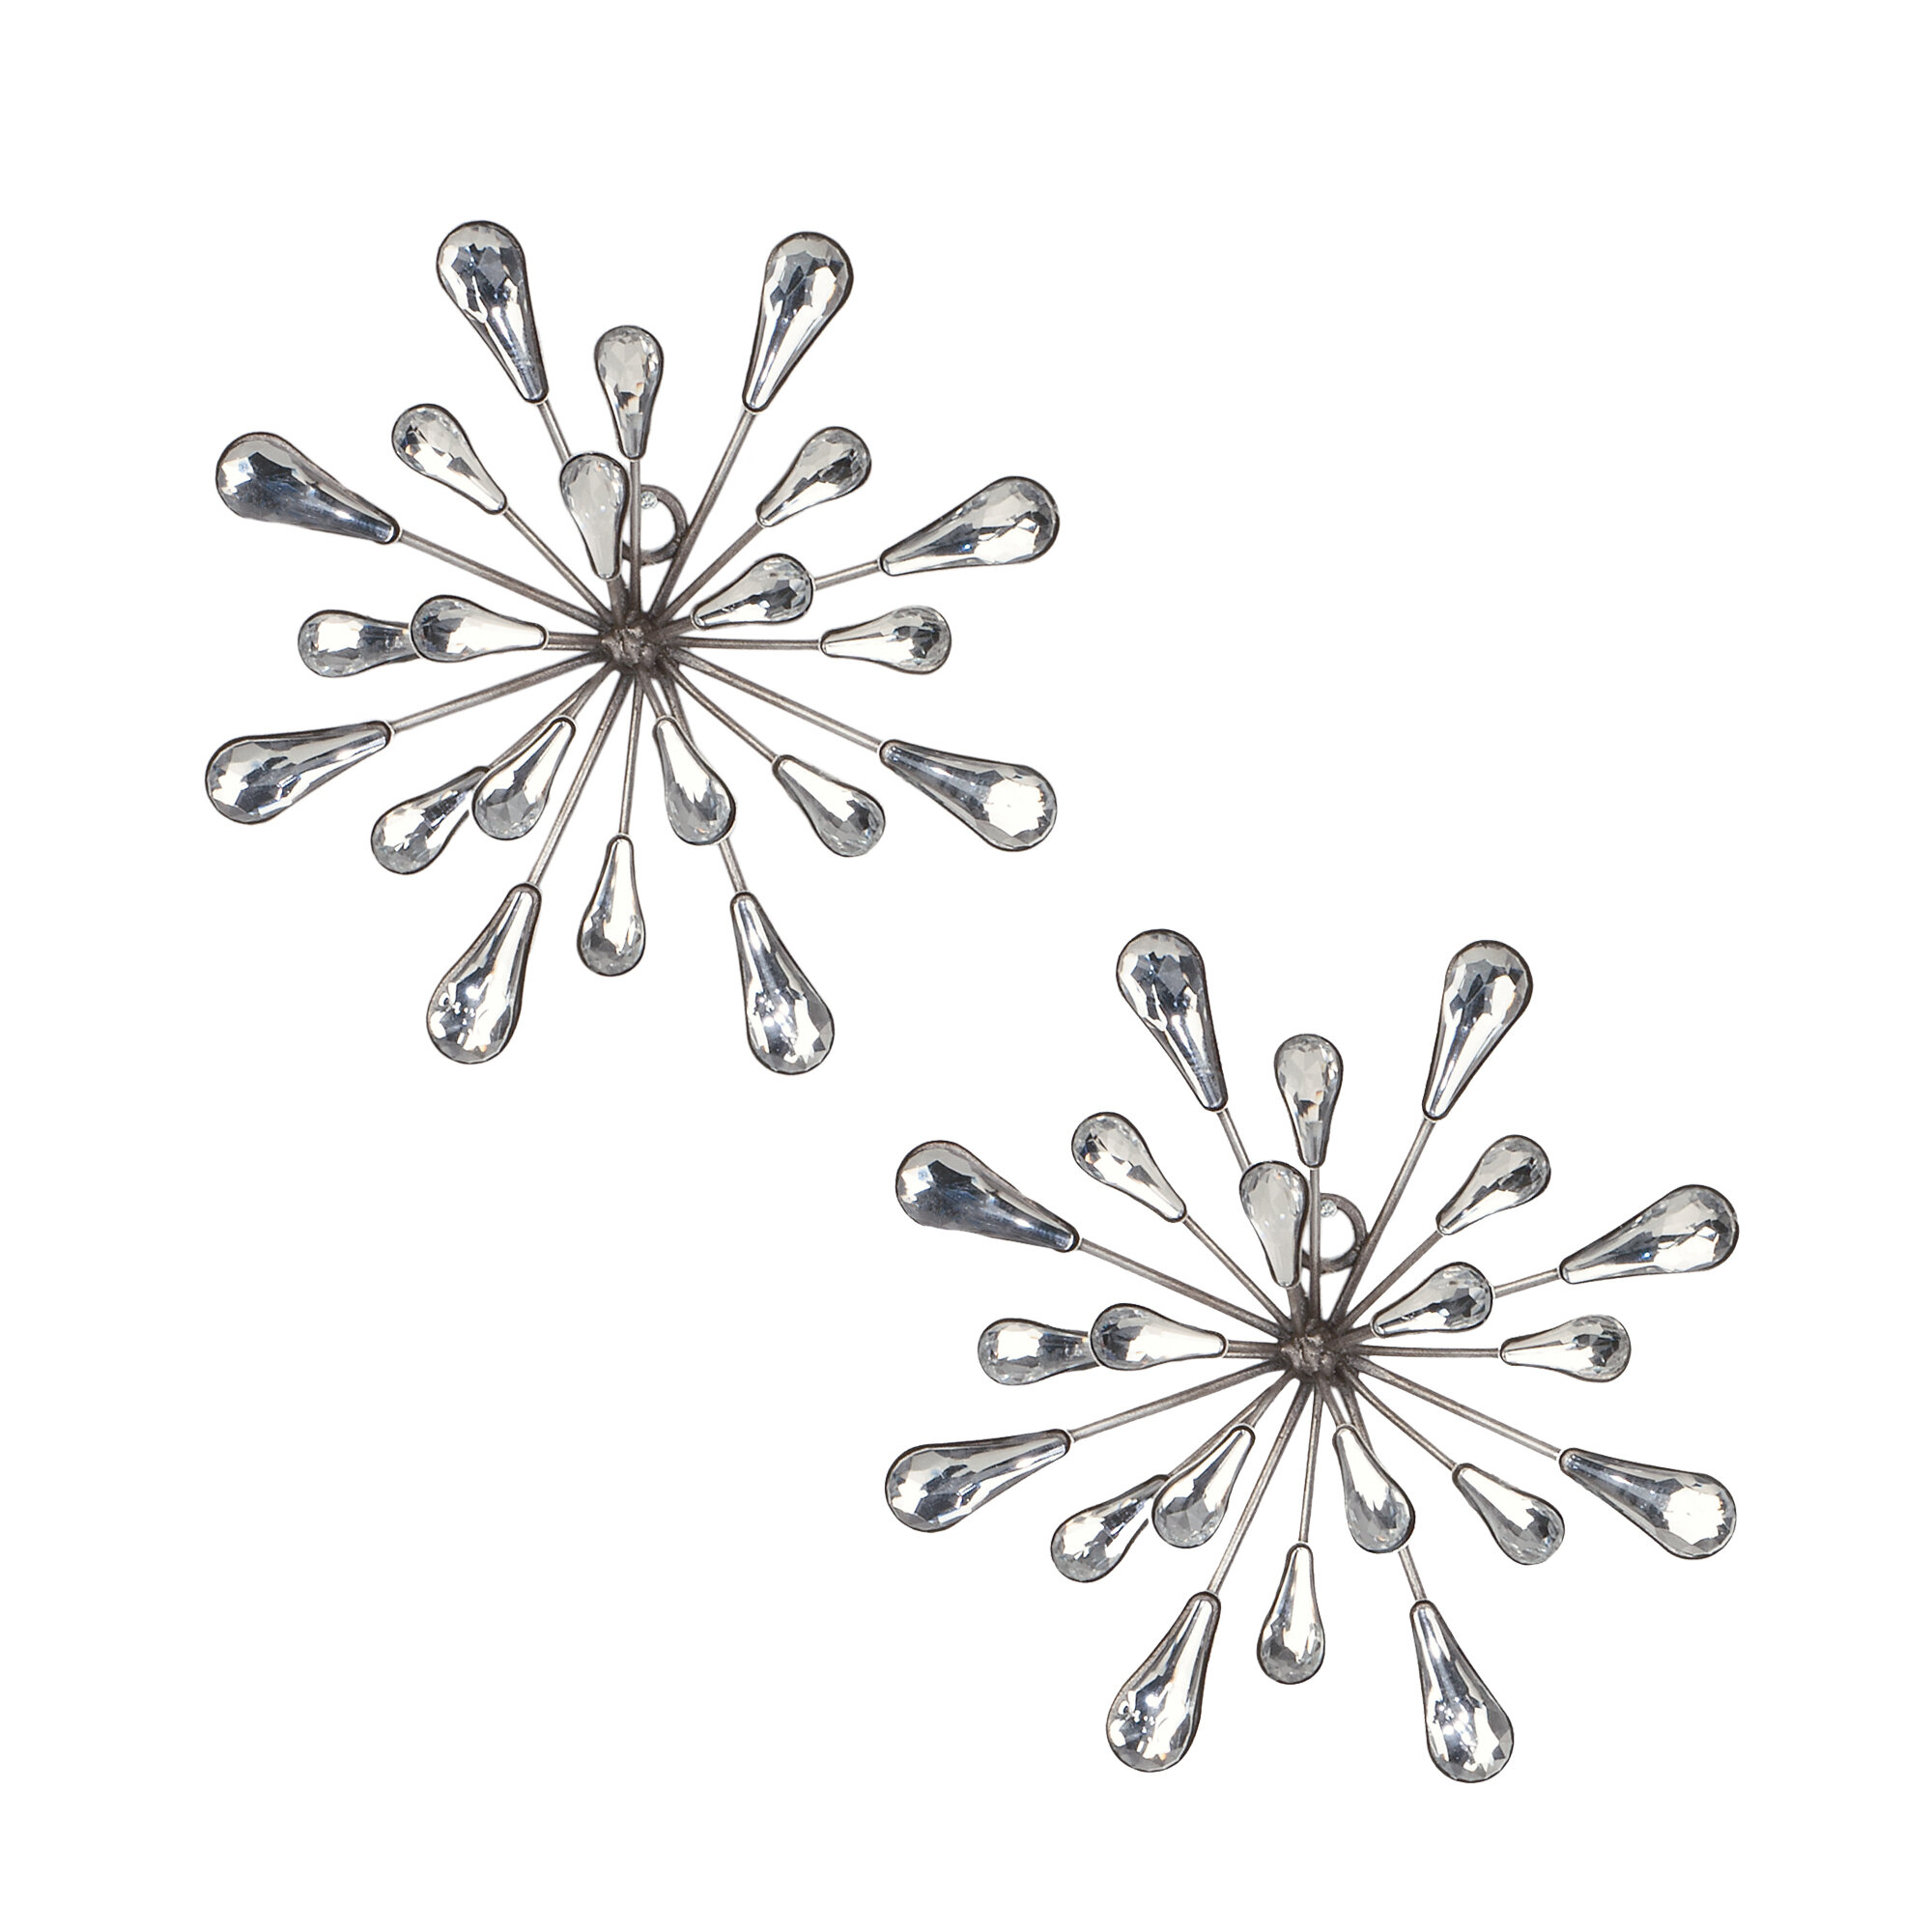 Starburst Wall Decor Inside Fashionable 2 Piece Starburst Wall Décor Set & Reviews (View 8 of 20)